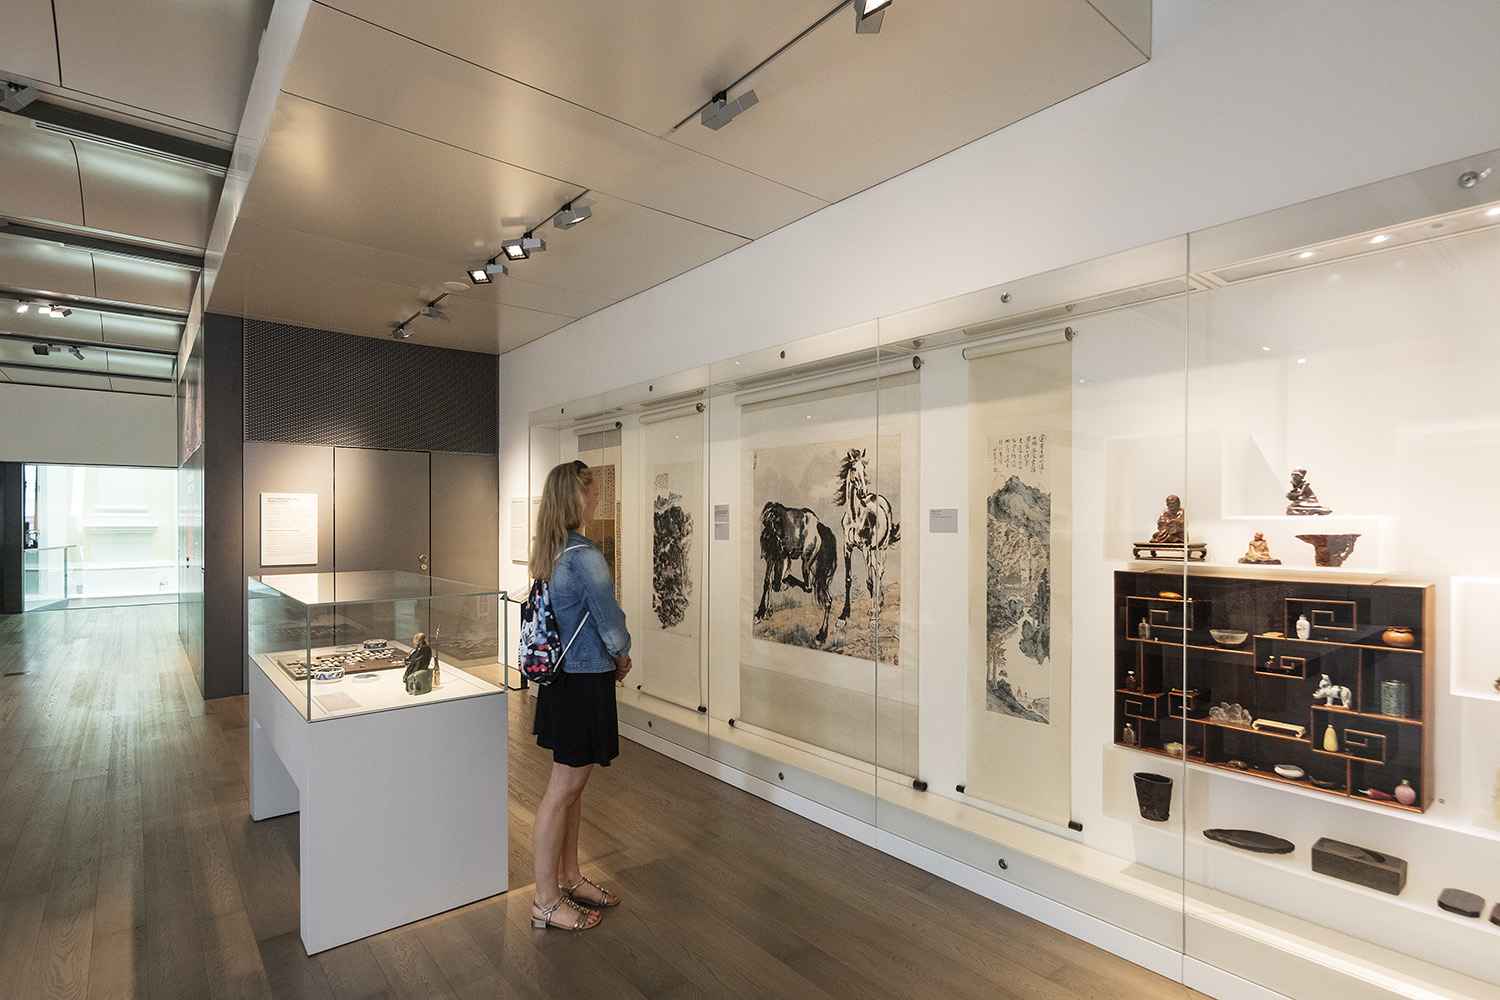 Working alongside GreenhilLi architects, FRD revitalised the Asian Civilisations Museum with the development of a new master plan and extension to the existing heritage building.